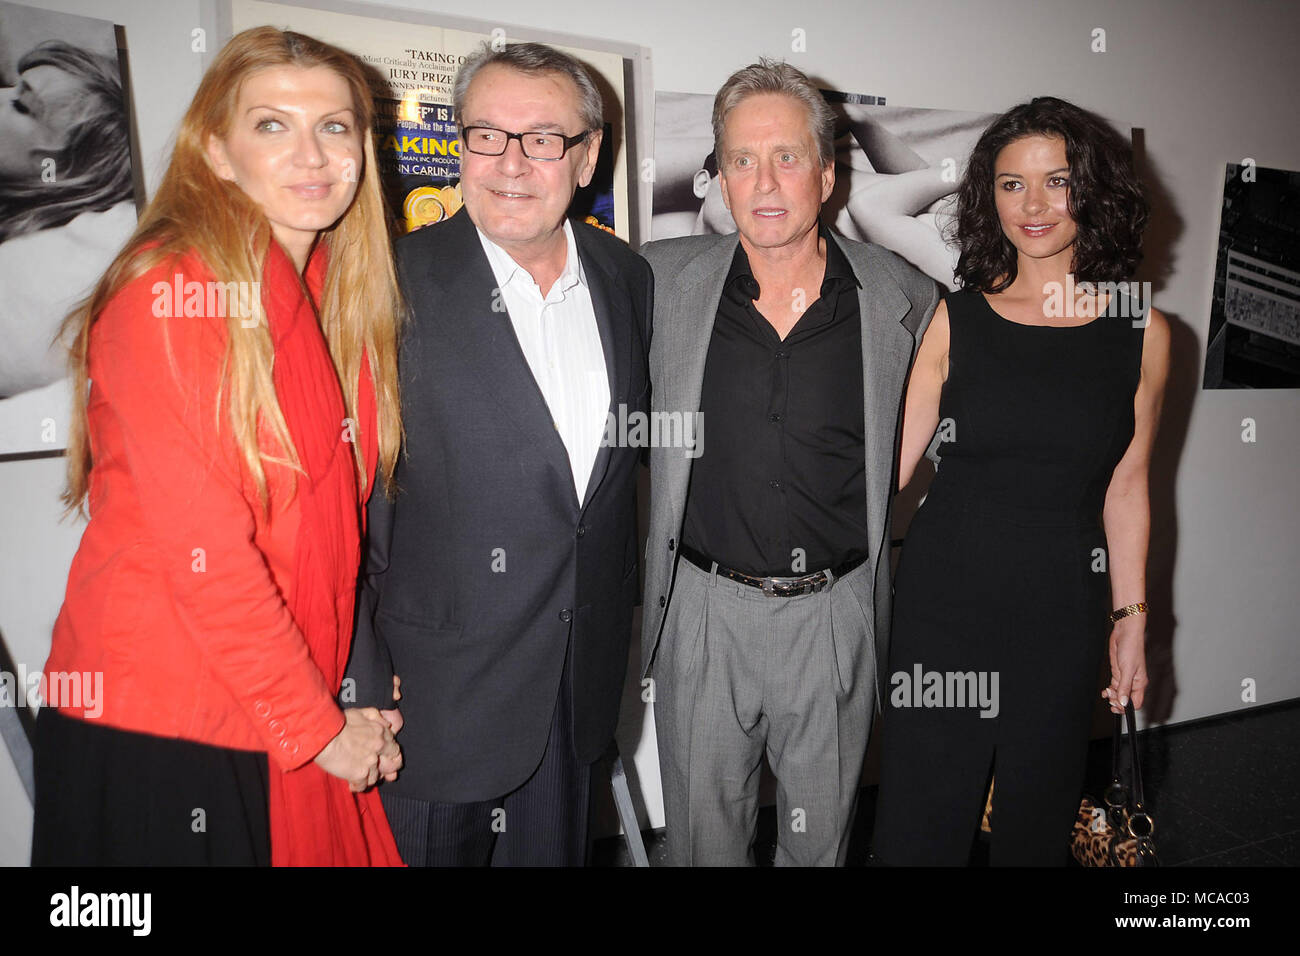 NEW YORK - FEBRUARY 15: (L- R) Martina Zborilova, Writer/Director Milos Forman, Actor/Producer Michael Douglas and actress Catherine Zeta Jones attend 'One Flew Over the Cuckoo's Nest' Intro At MoMA on February 15, 2008 in New York City   People:  Martina Zborilova; Milos Forman; Michael Douglas; Catherine Zeta Jones - Stock Image